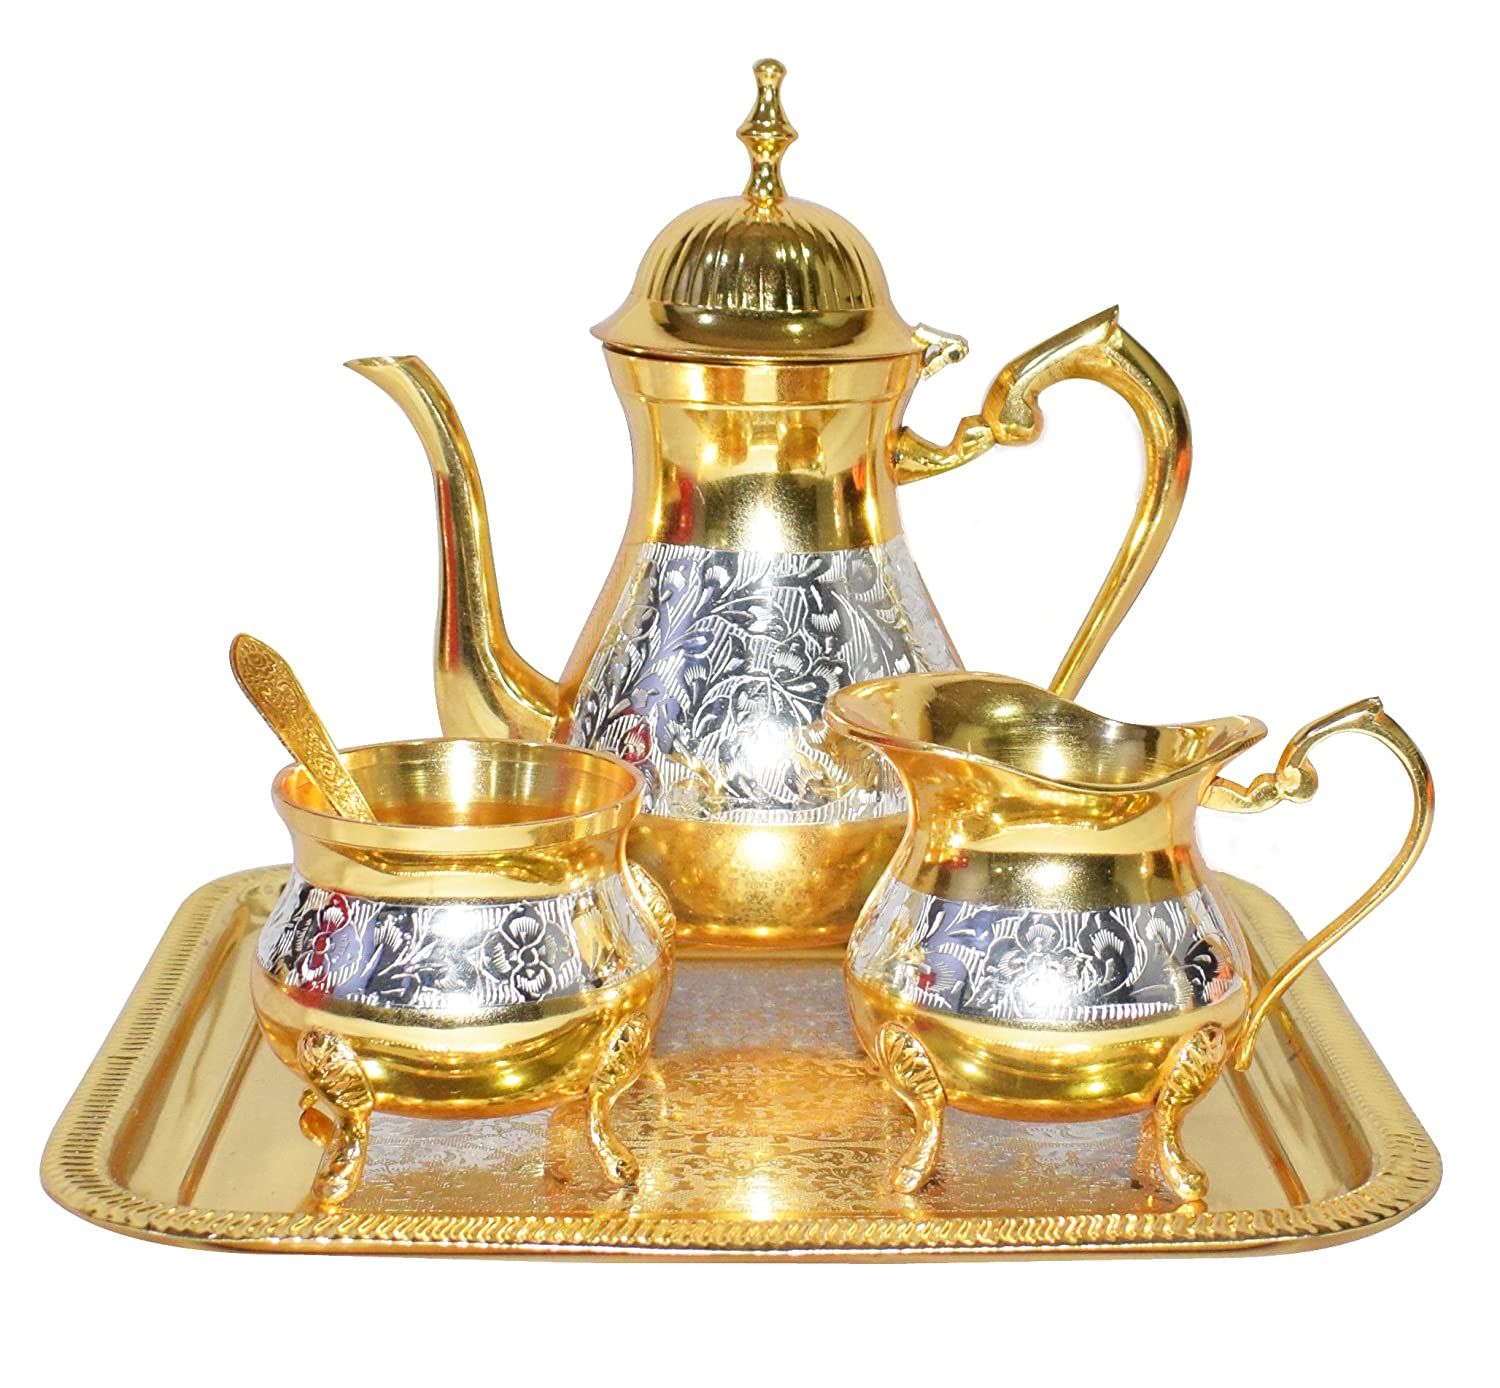 Diwali/Deepawali Gift Premium Antique Mughal Style Brass Gold and Silver Tea Coffee Set.Modern and Traditional Home Decor Themes| Crafts'man